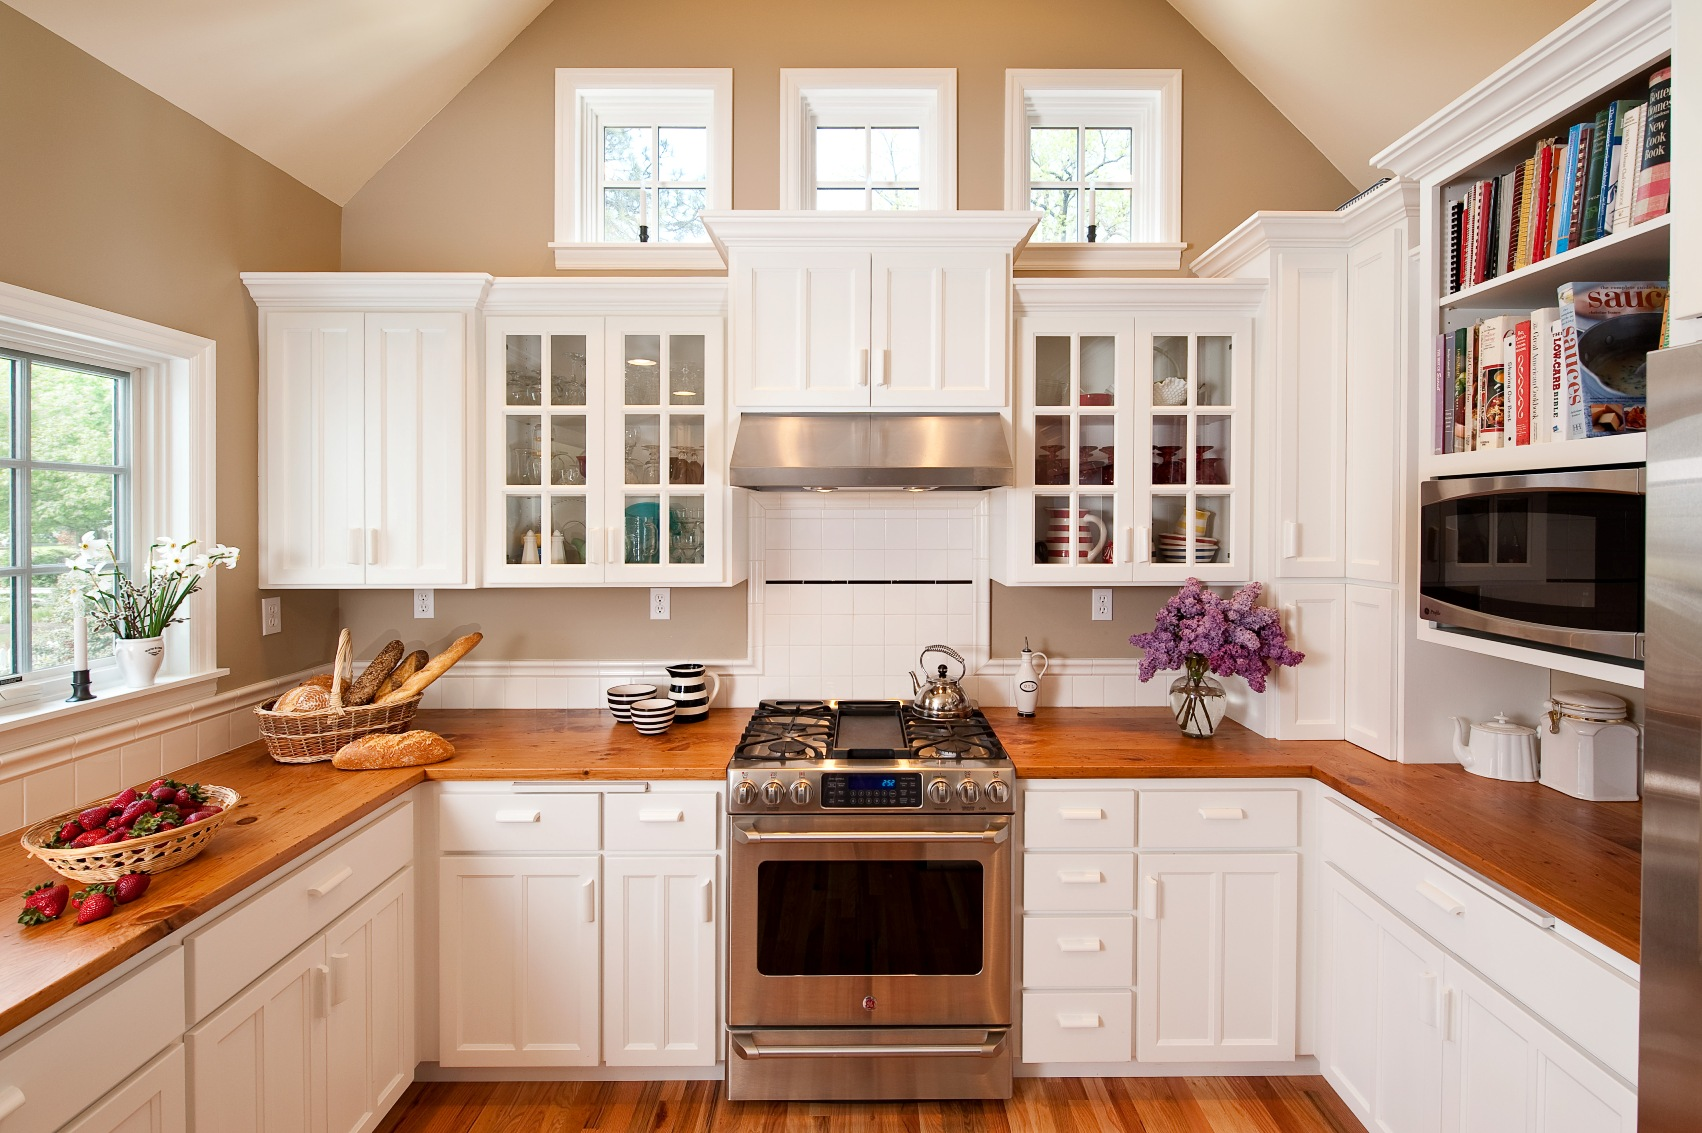 The look of the kitchen cabinets was kept simple in this classic white kitchen using panel doors with a center mullion, glass doors, and a white tile backsplash.